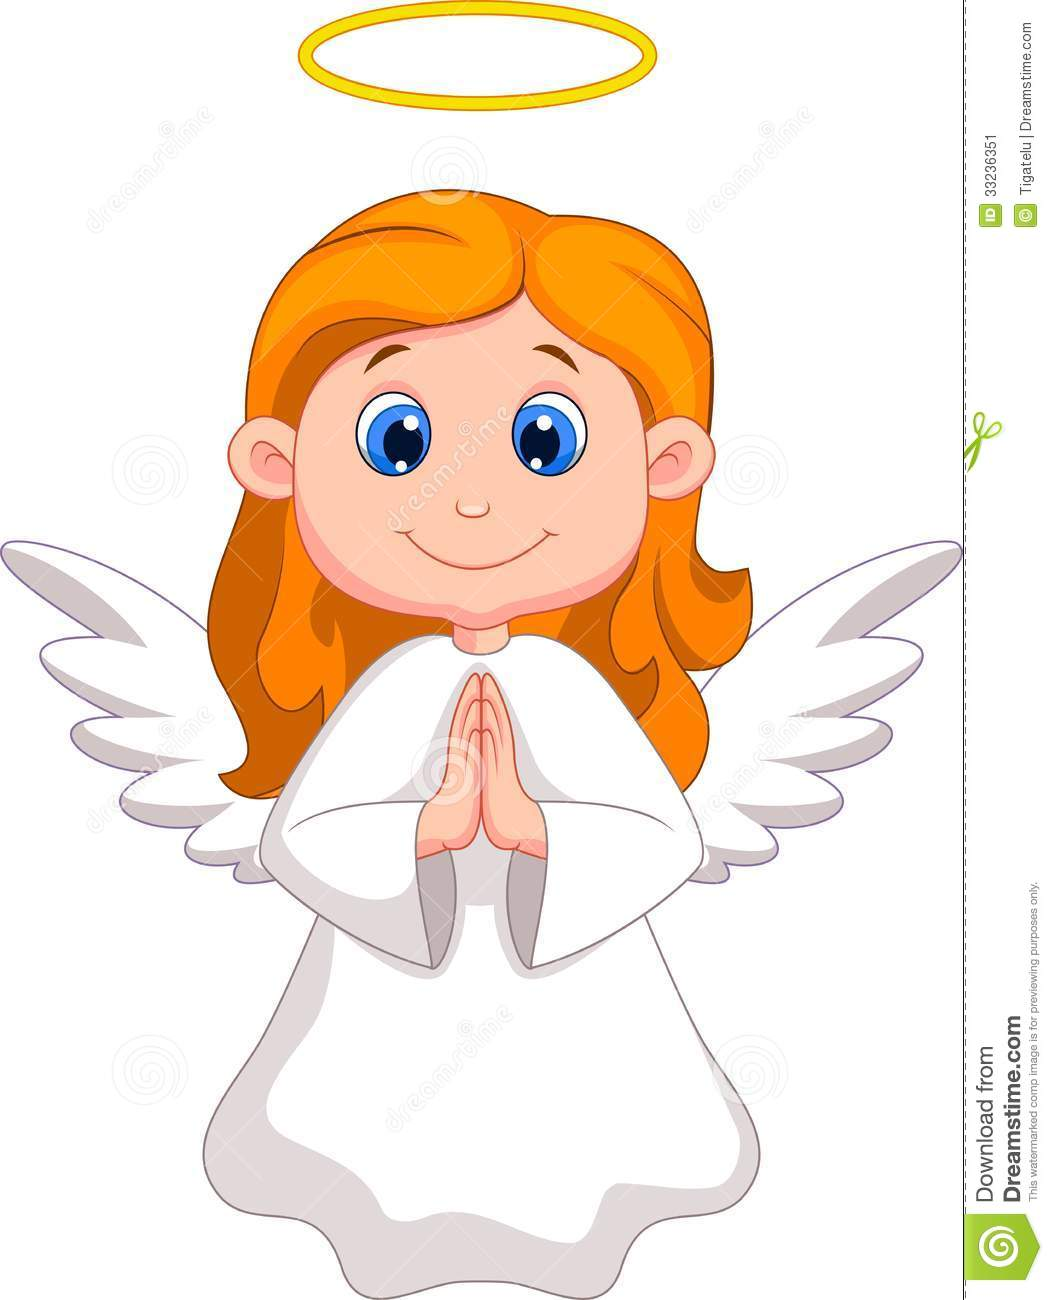 cute angel cartoon stock image image 33236351 angel wings clip art free download angel wings clip art black and white